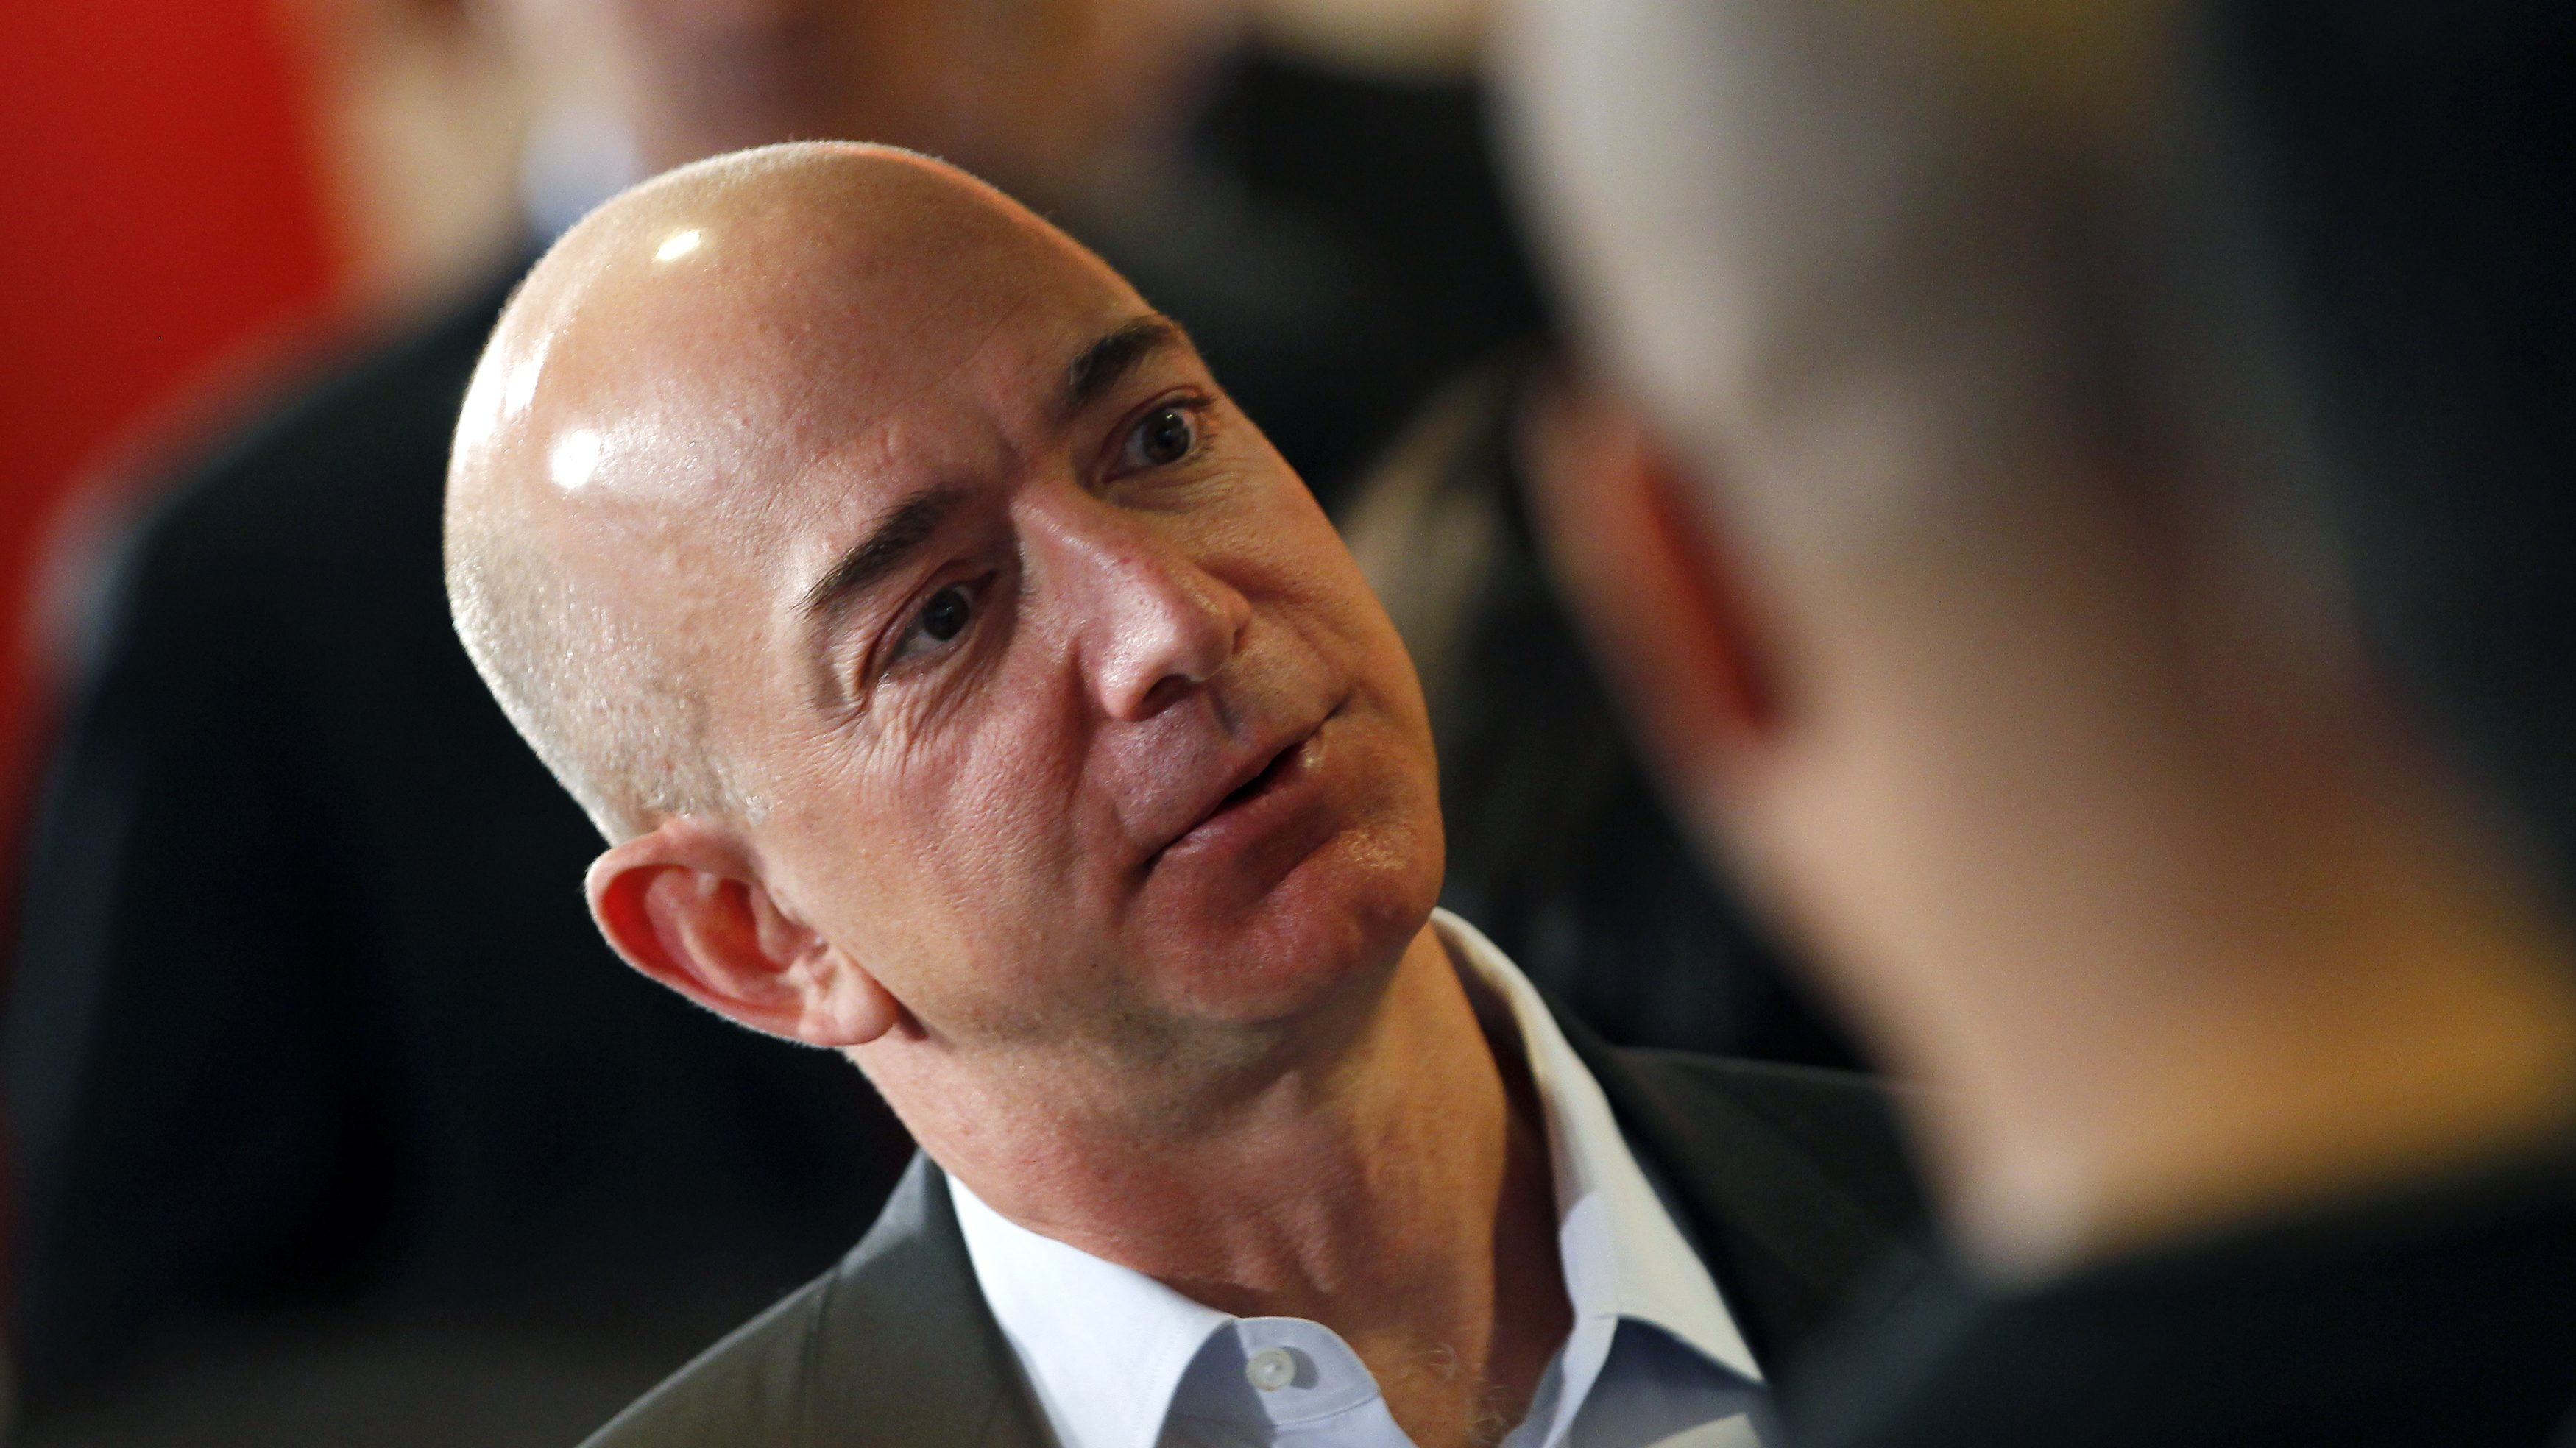 Amazon.com President, CEO and Chairman Bezos speaks at the Consumer Reports headquarters in Yonkers